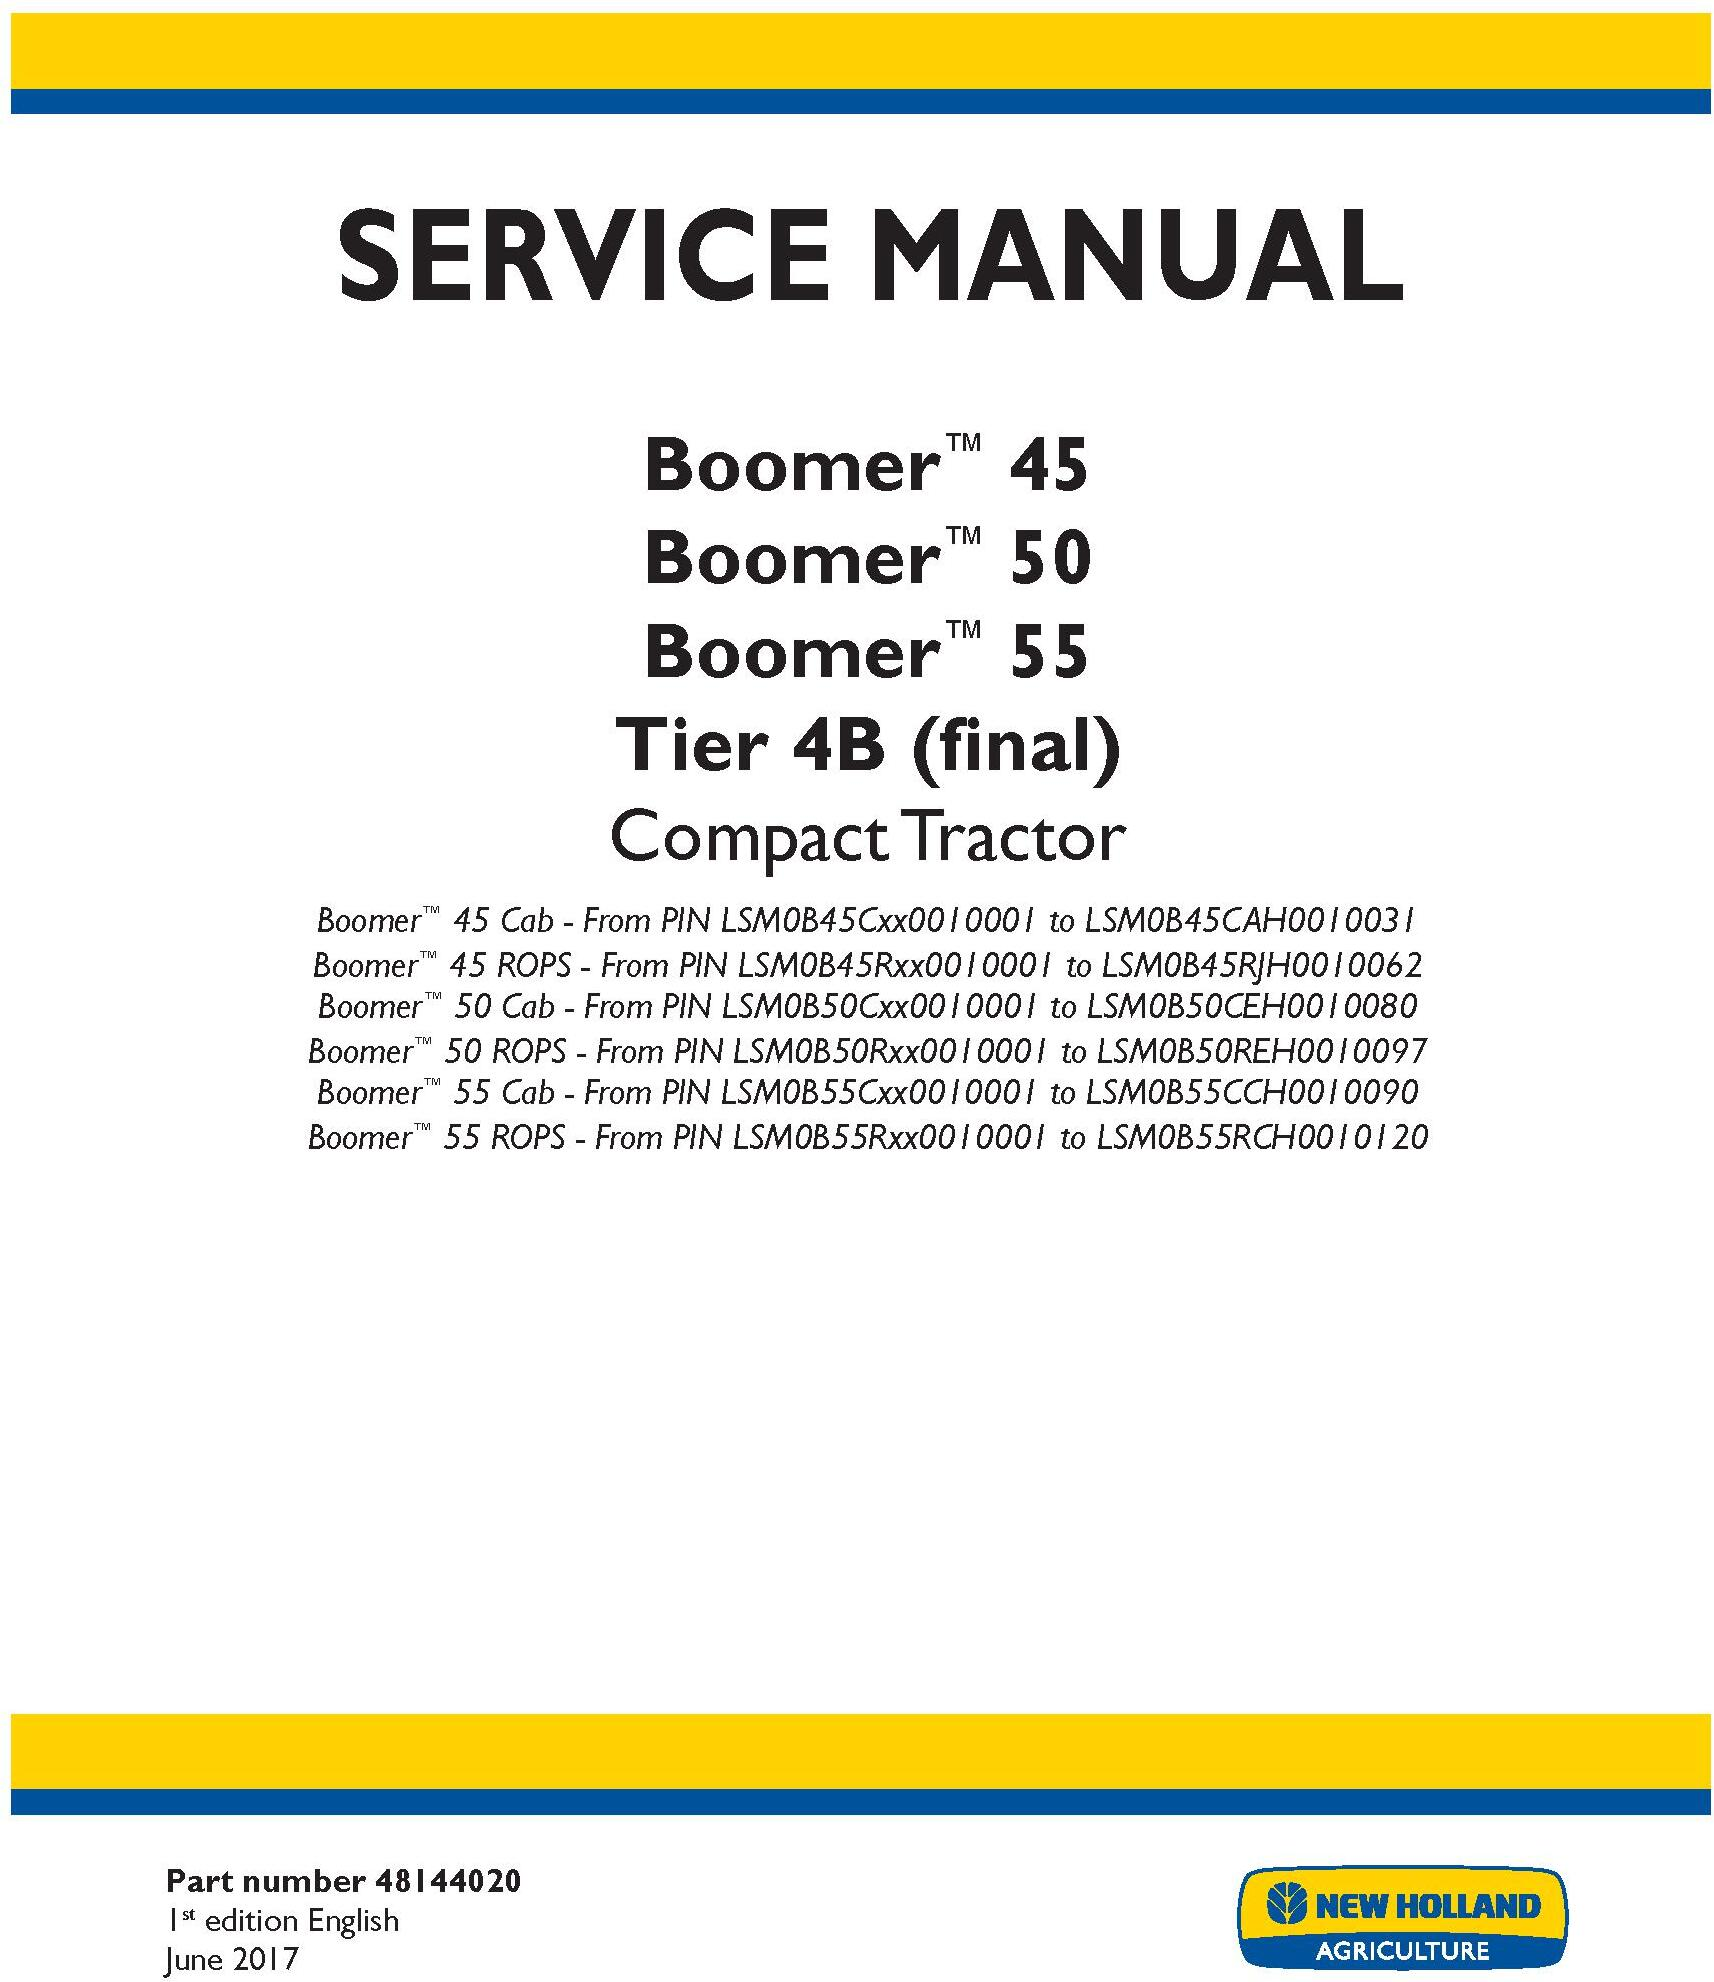 New Holland Boomer 45, Boomer 50, Boomer 55 Tier 4B final Compact Tractor Service Manual (USA) - 19498